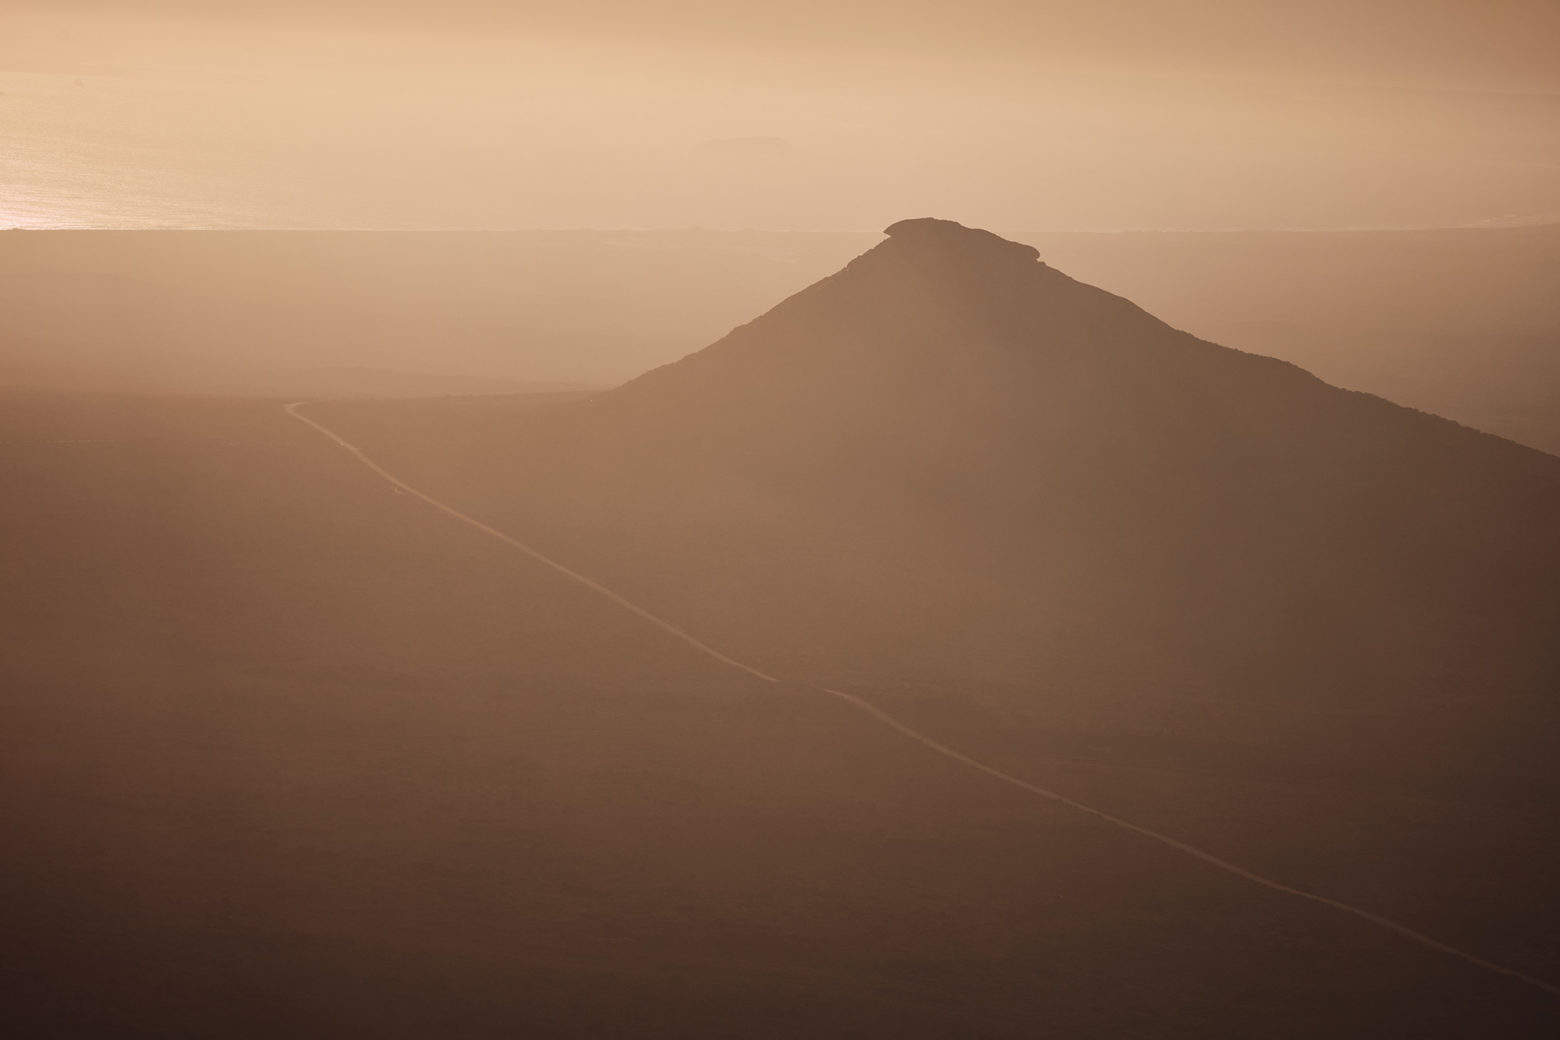 Frenchman Peak, resembling the hats of the french army circa 1800